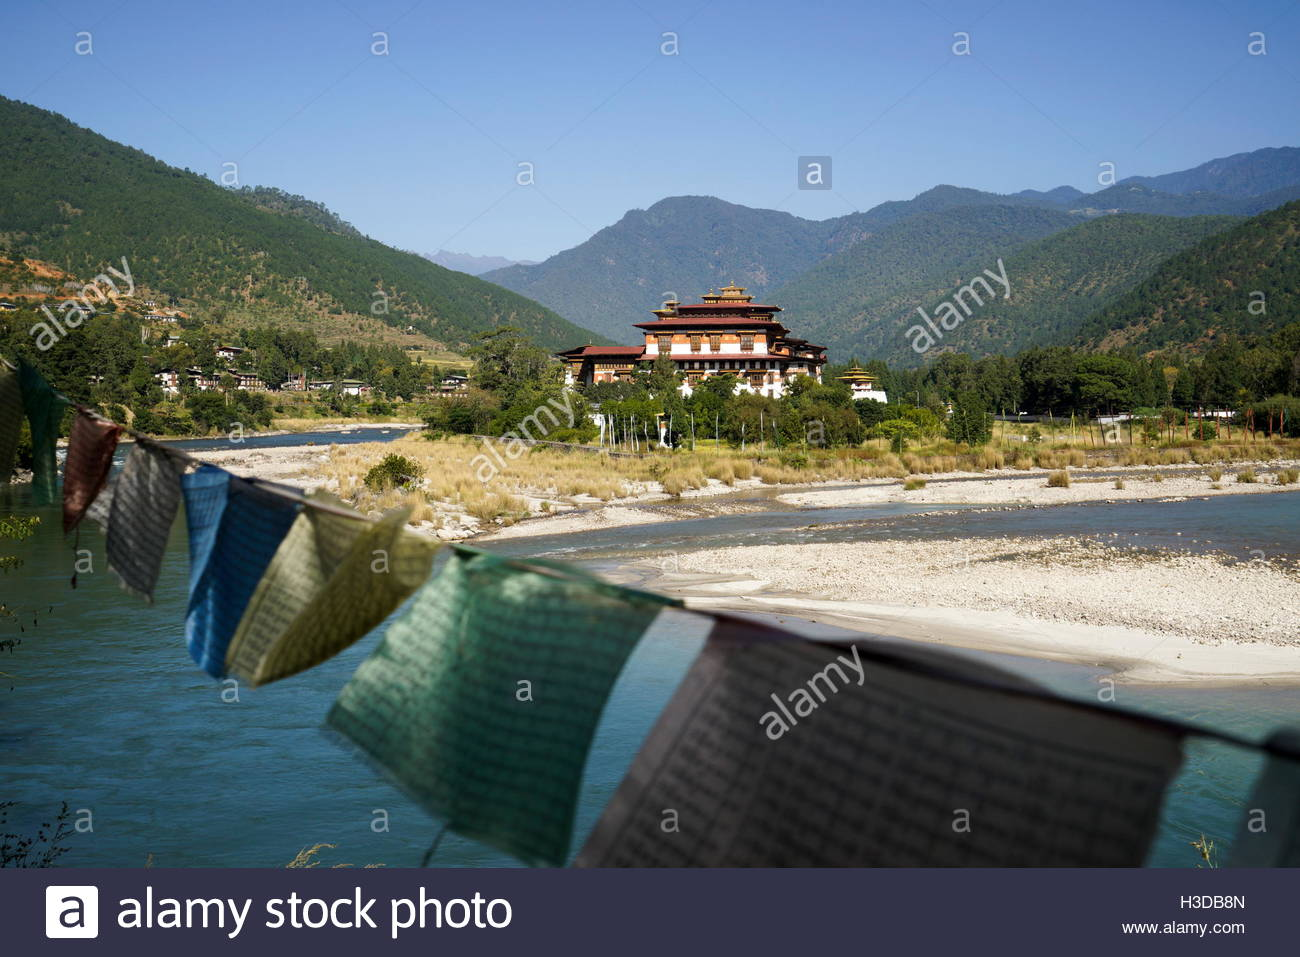 The Punakha Dzong, also known as Pungtang Dechen Photrang Dzong, meaning the palace of great happiness or bliss, - Stock Image